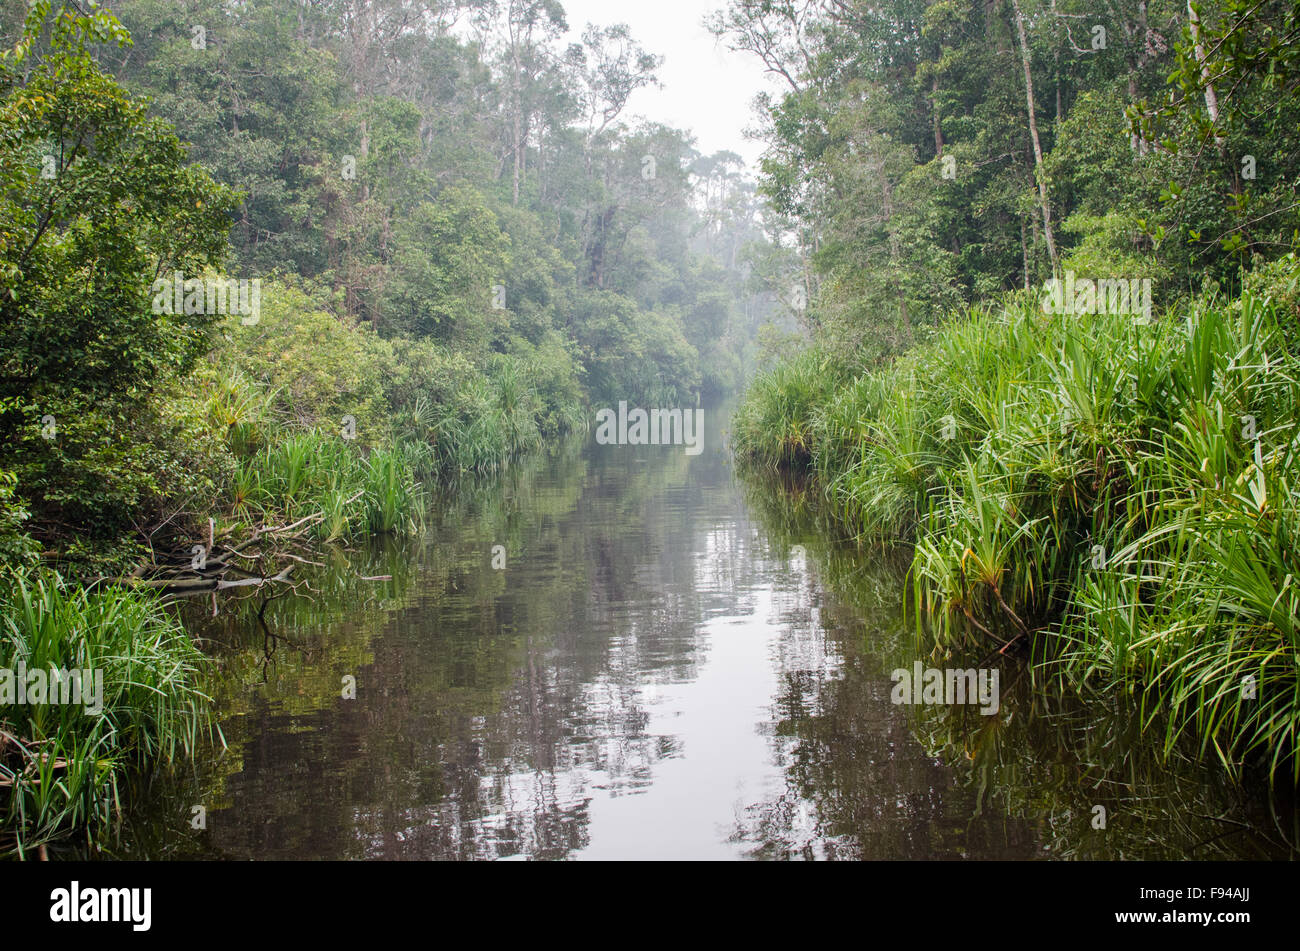 Waterway though Forest, Tanjung Puting National Park, Kalimantan, Indonesia - Stock Image